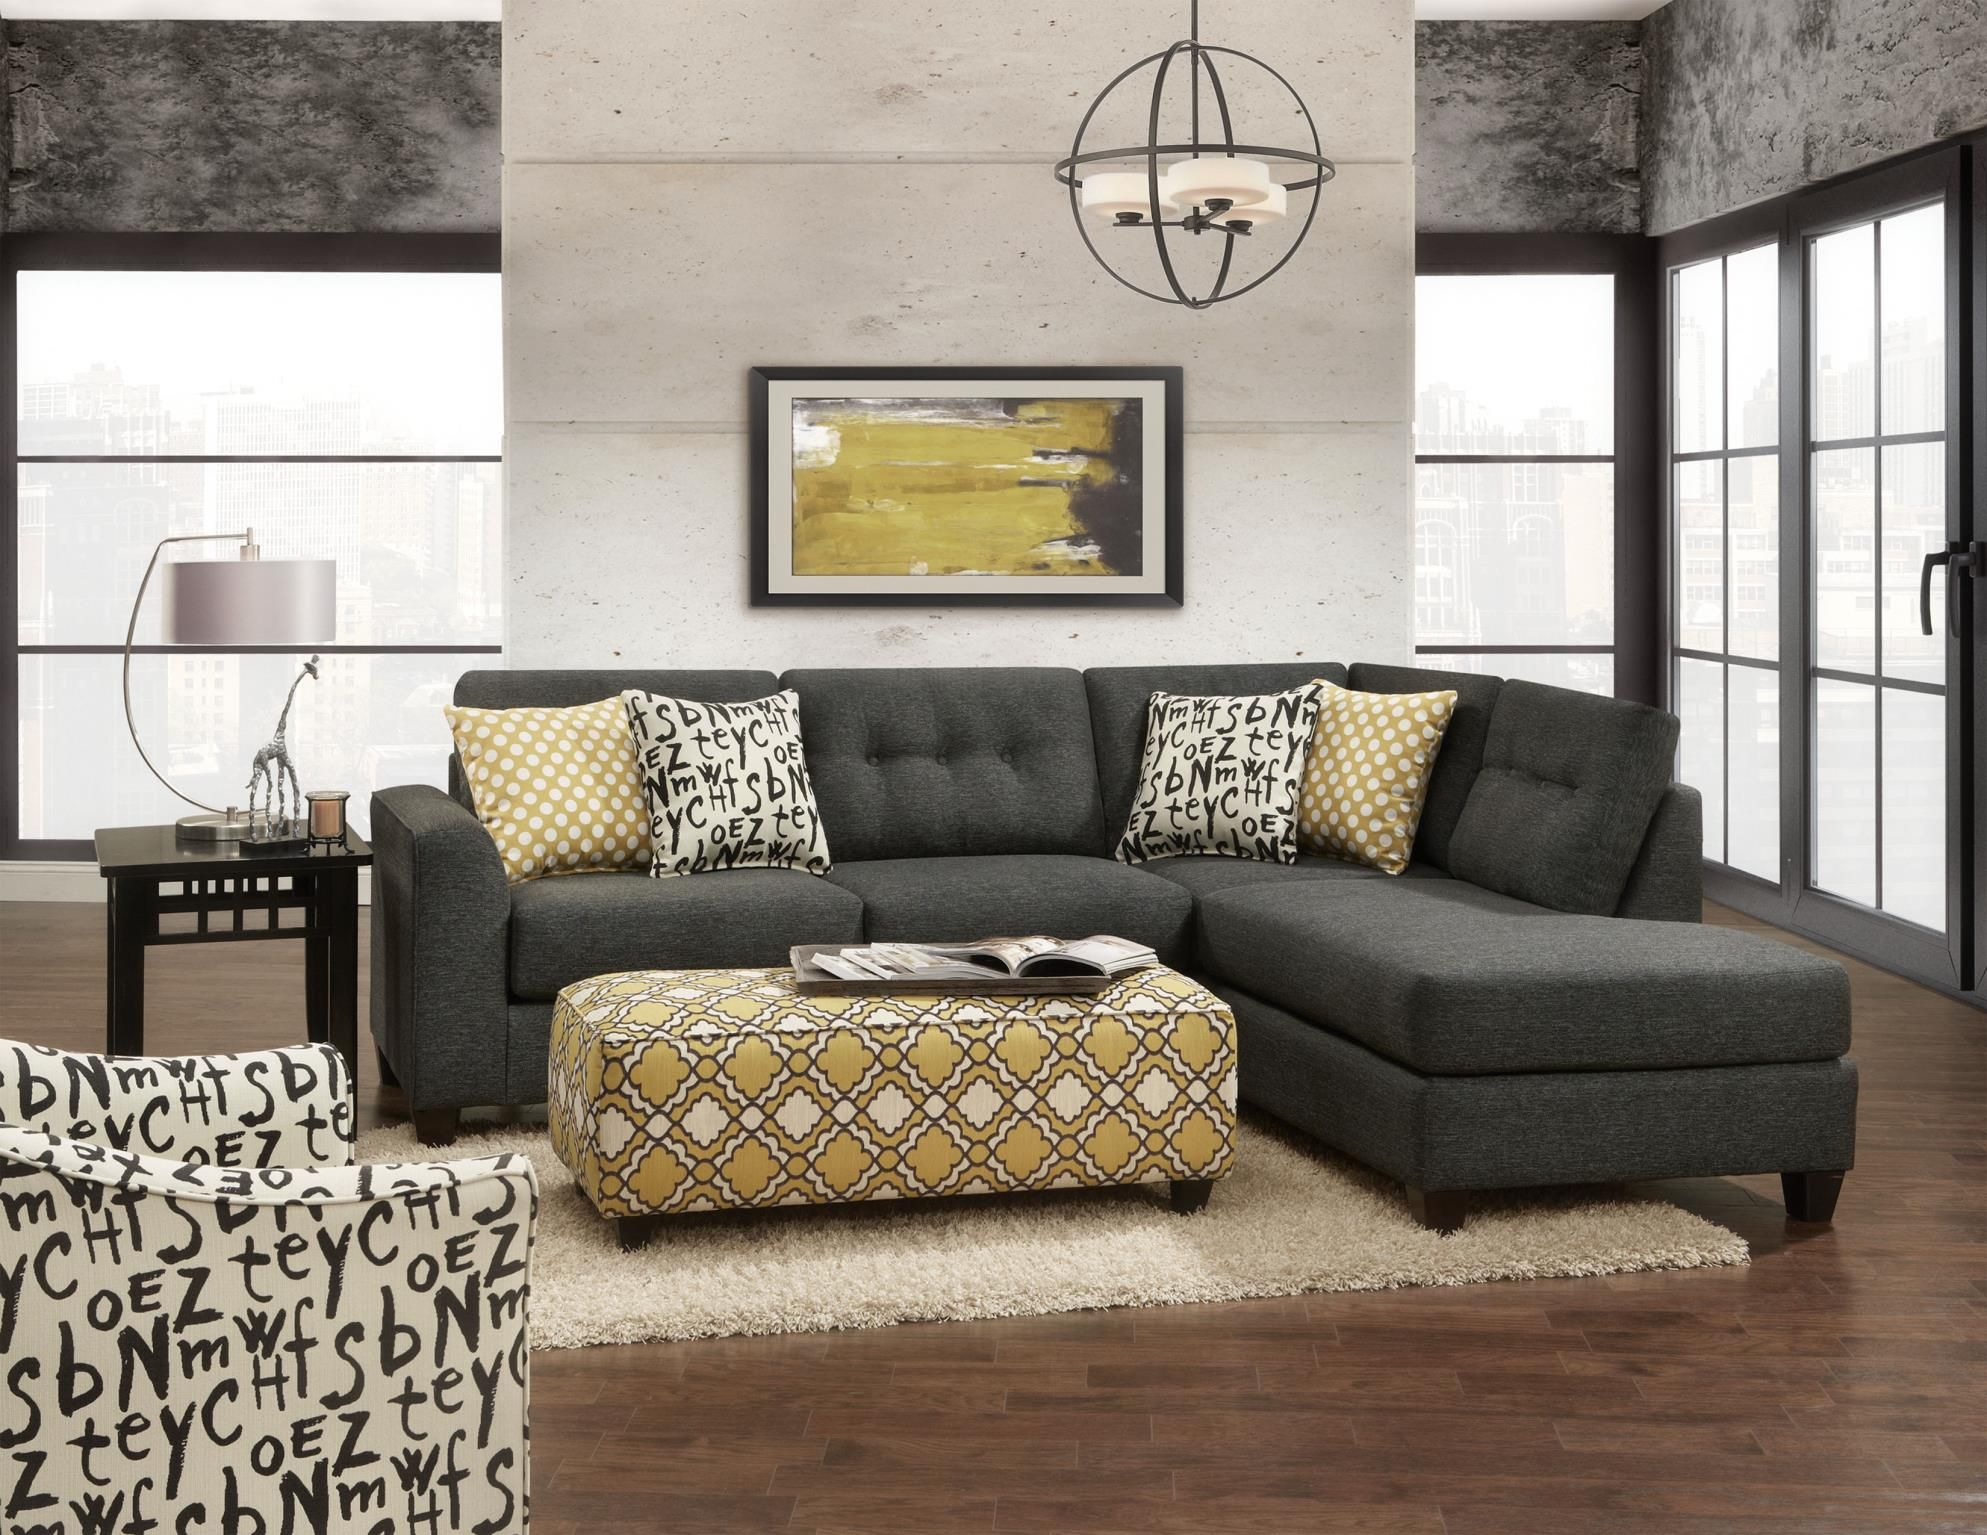 15151516 Max Ebony Sectional by Fusion 15151516